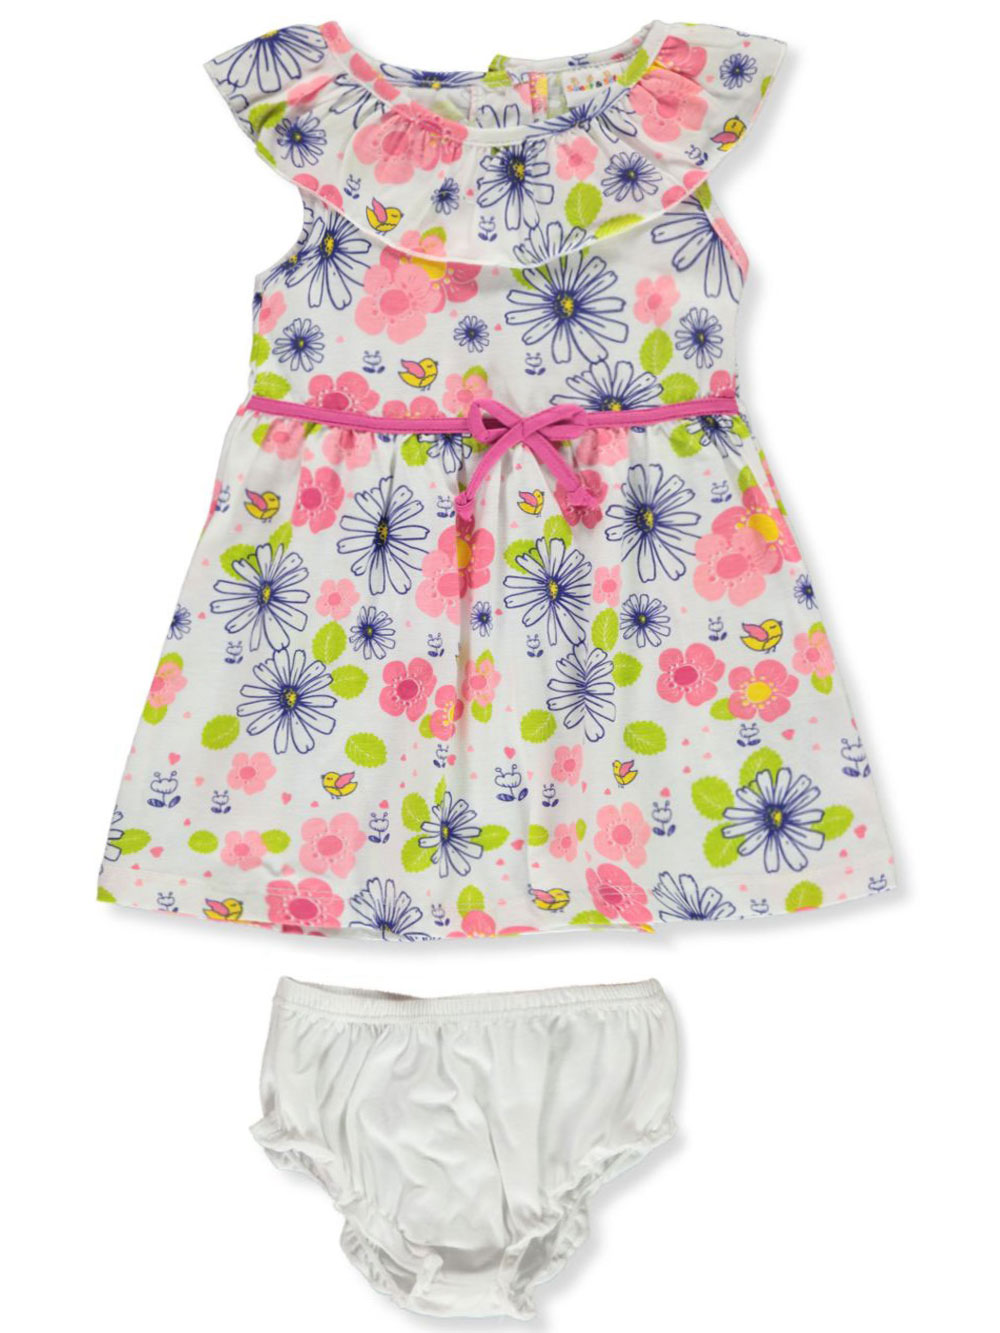 Girls White and Multicolor Newborn Dresses